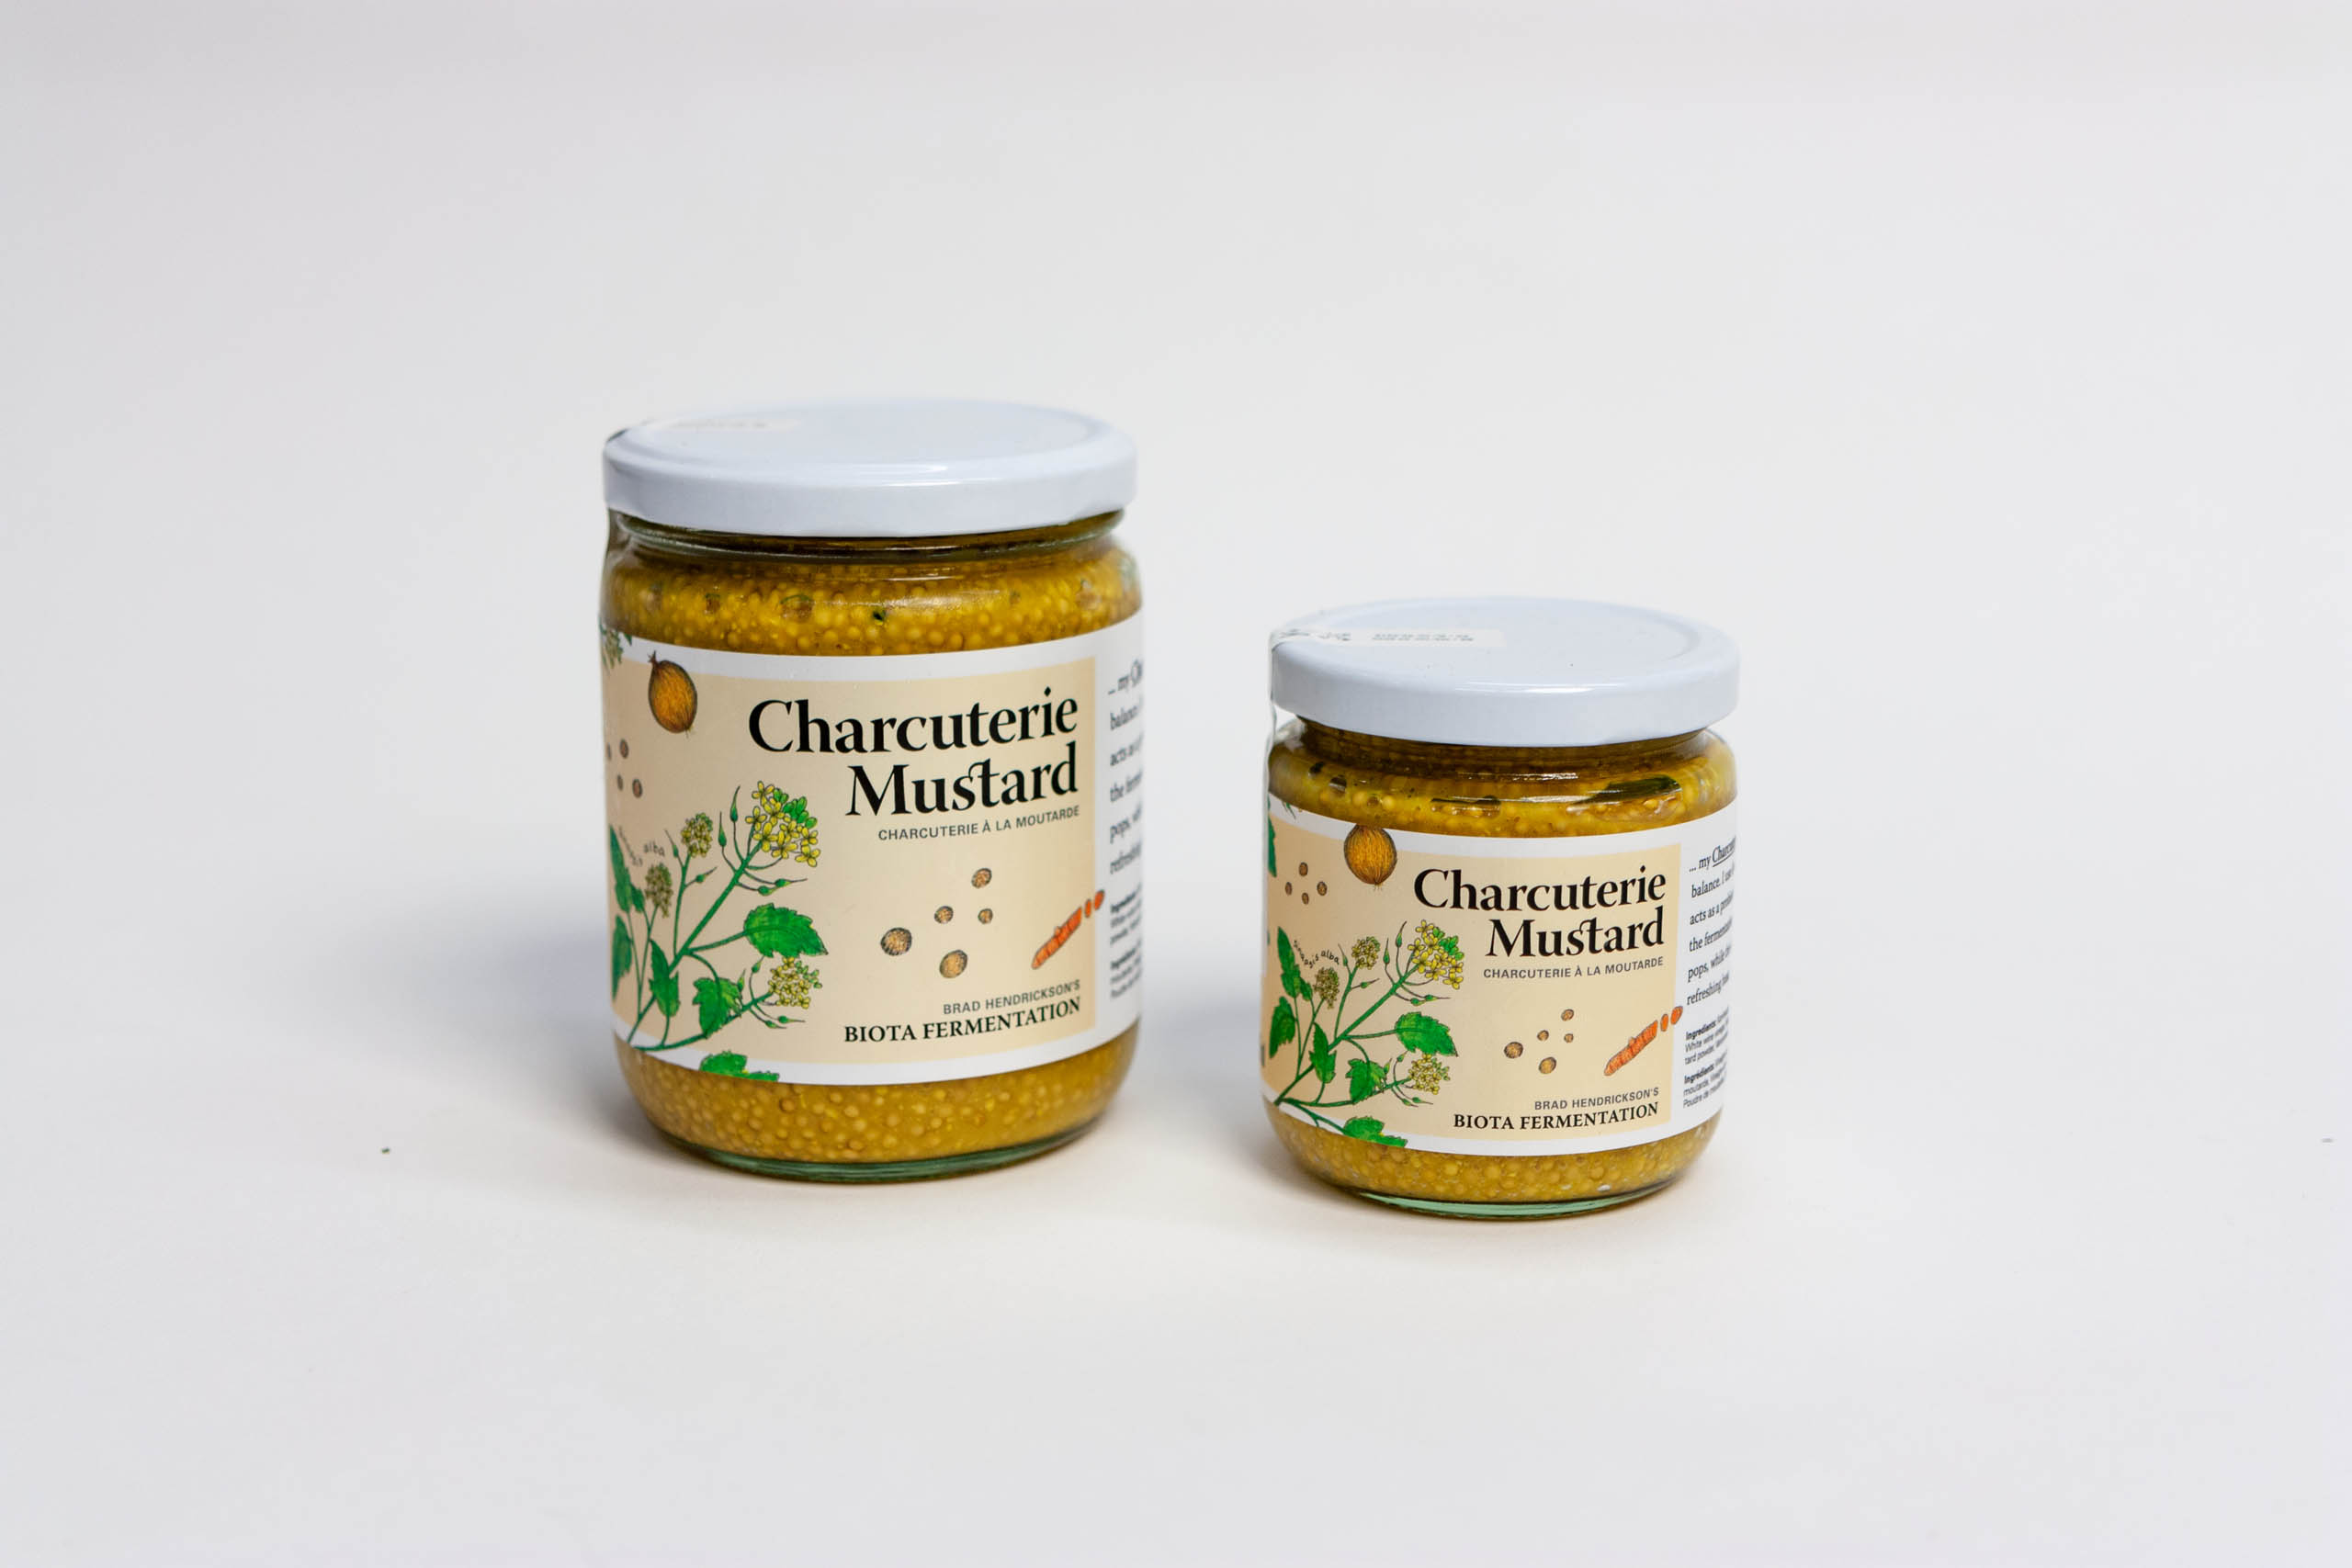 Charcuterie Mustard Jars with mustard plant illustration on a light brown-yellow background — by Yagnyuk.